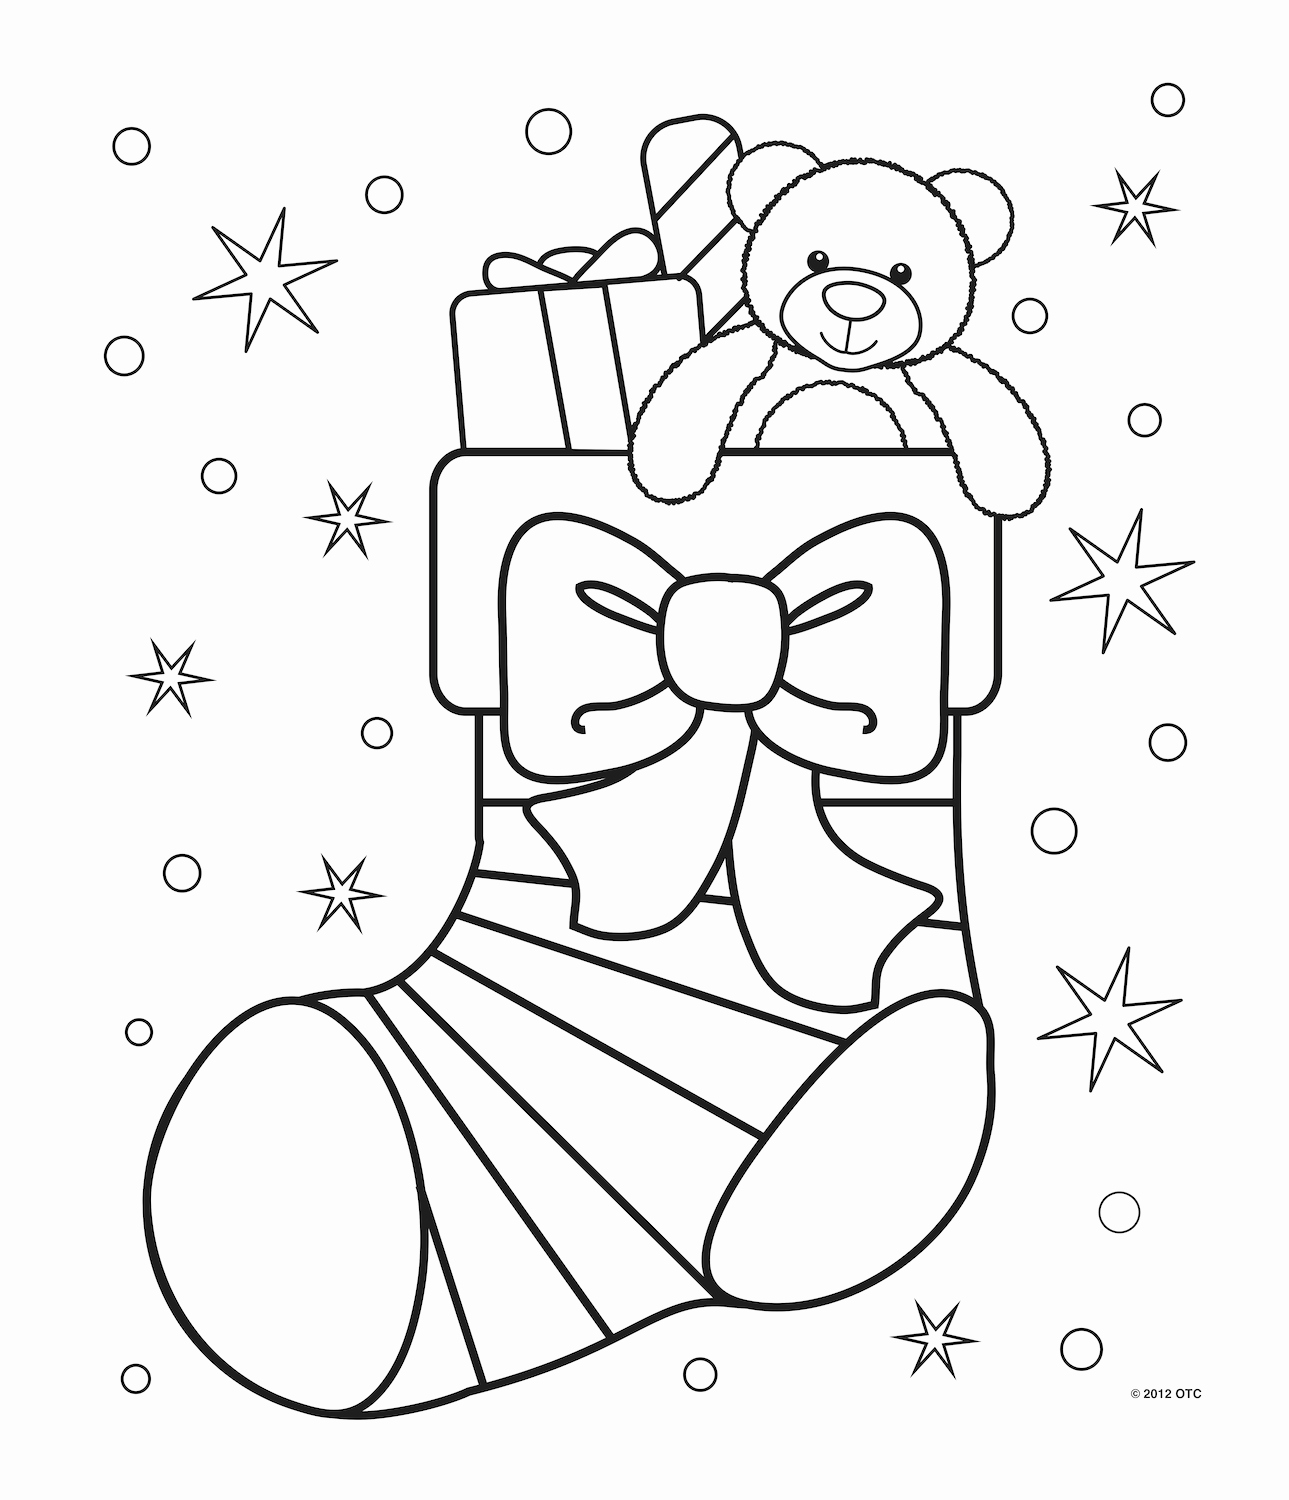 Lego Christmas Coloring Pages At Getcolorings